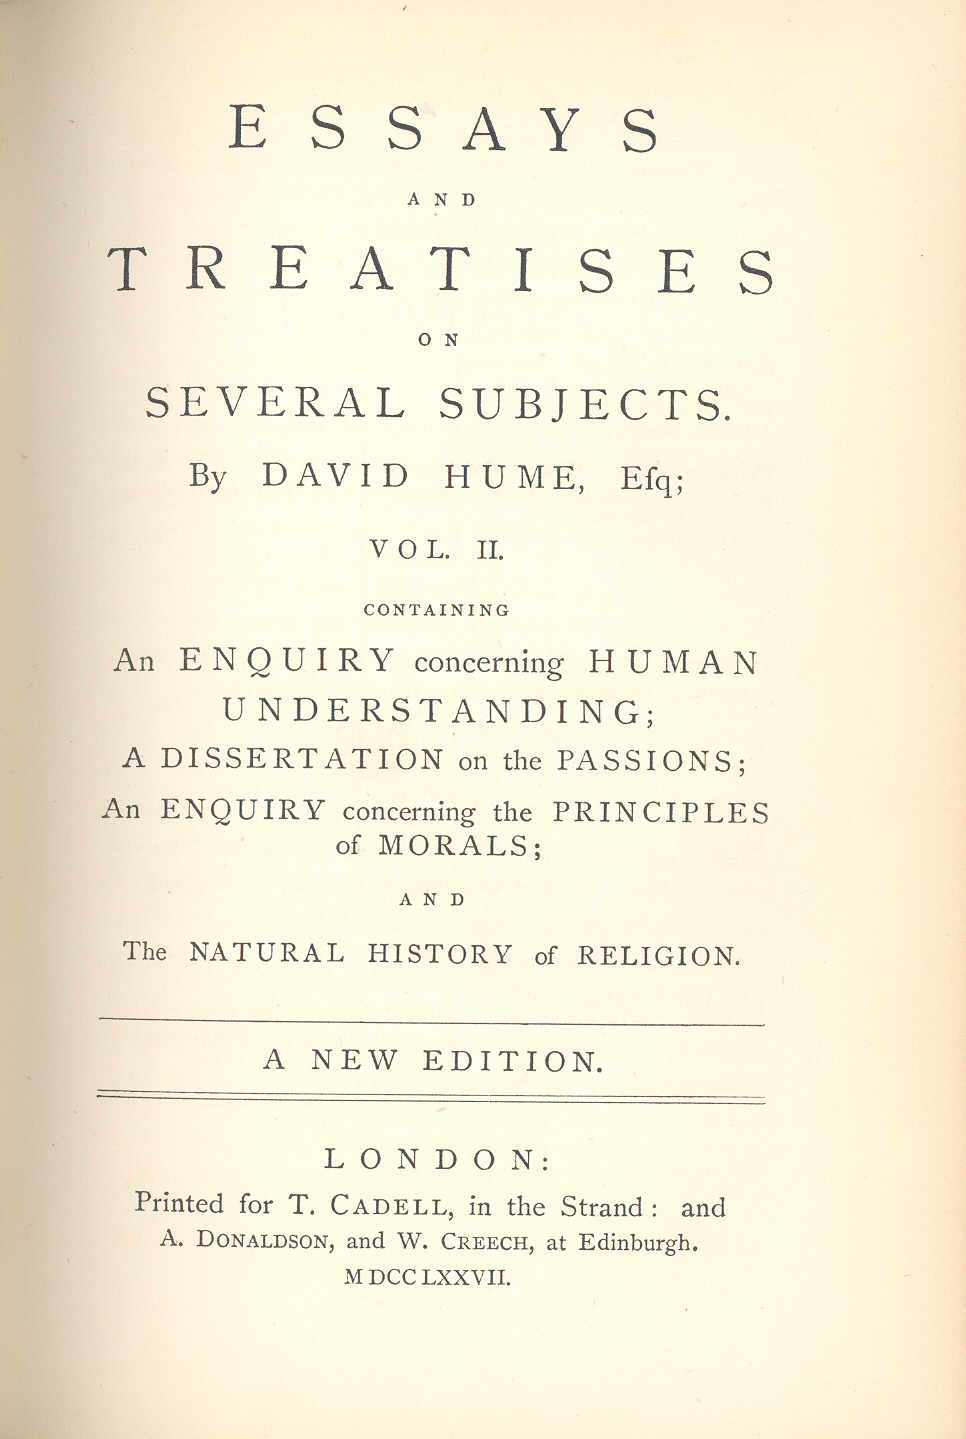 hume essays and treatises on several subjects 1777 Essays, moral, political, and literary by david hume 1777 more info: front matter david hume collection entitled essays and treatises on several subjects.